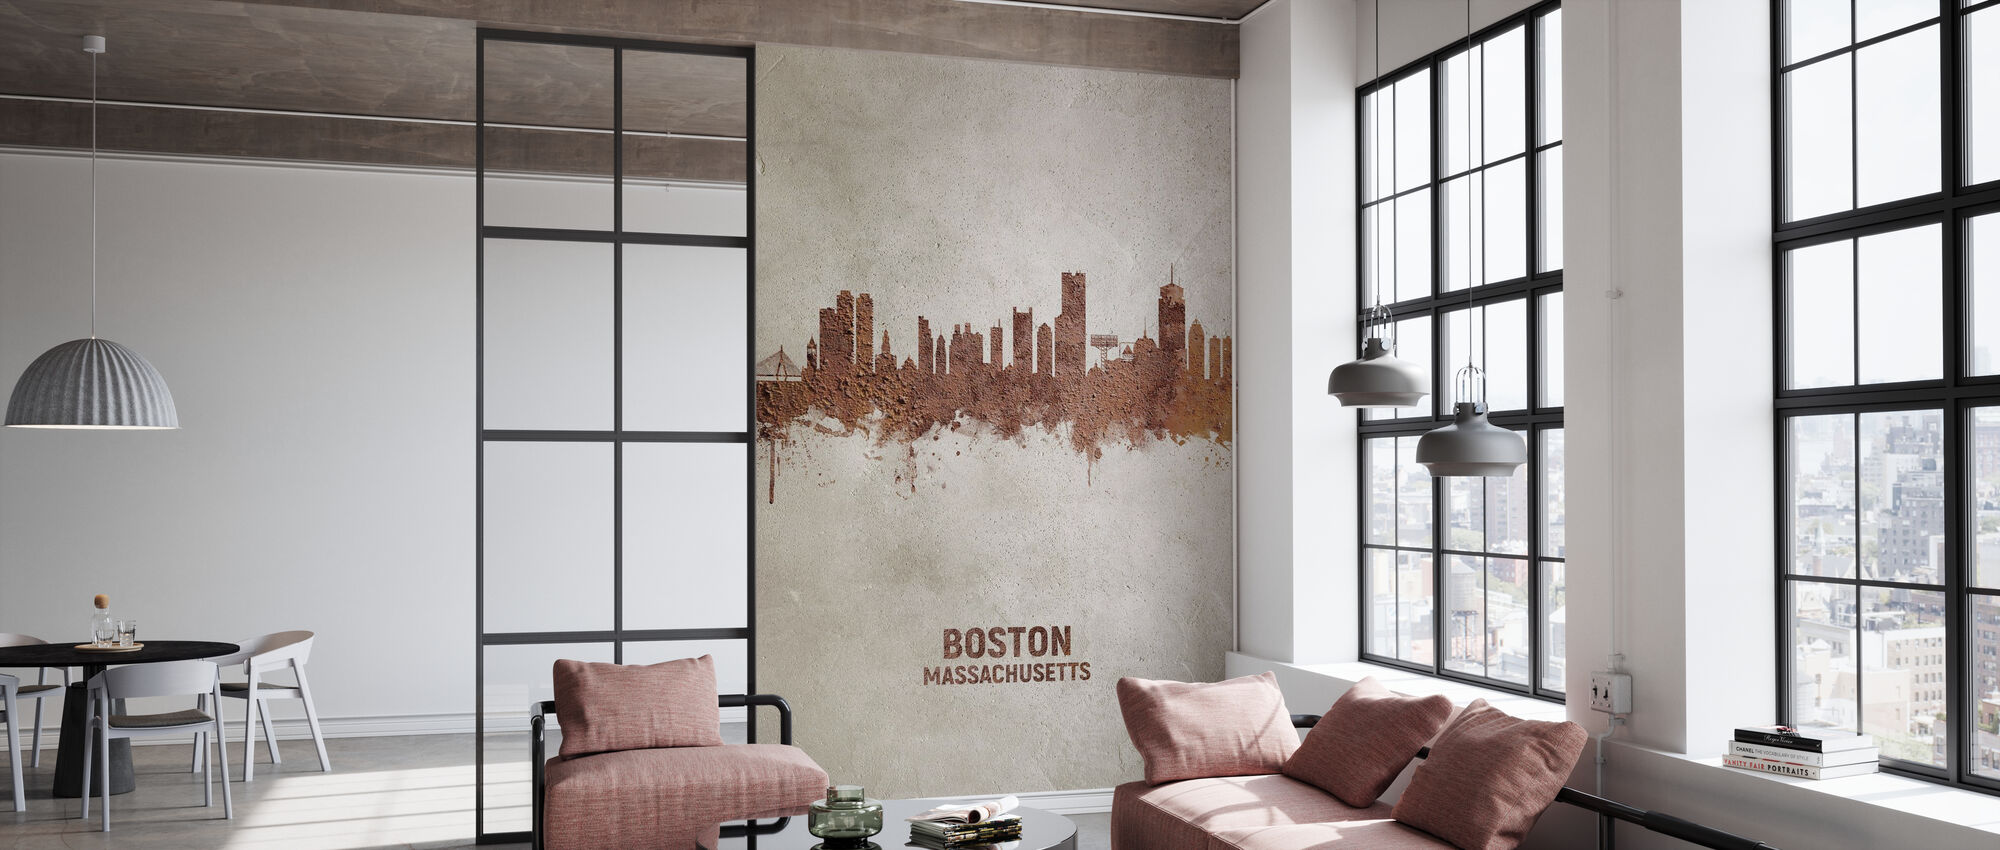 Boston Massachusetts Rust Skyline - Wallpaper - Office